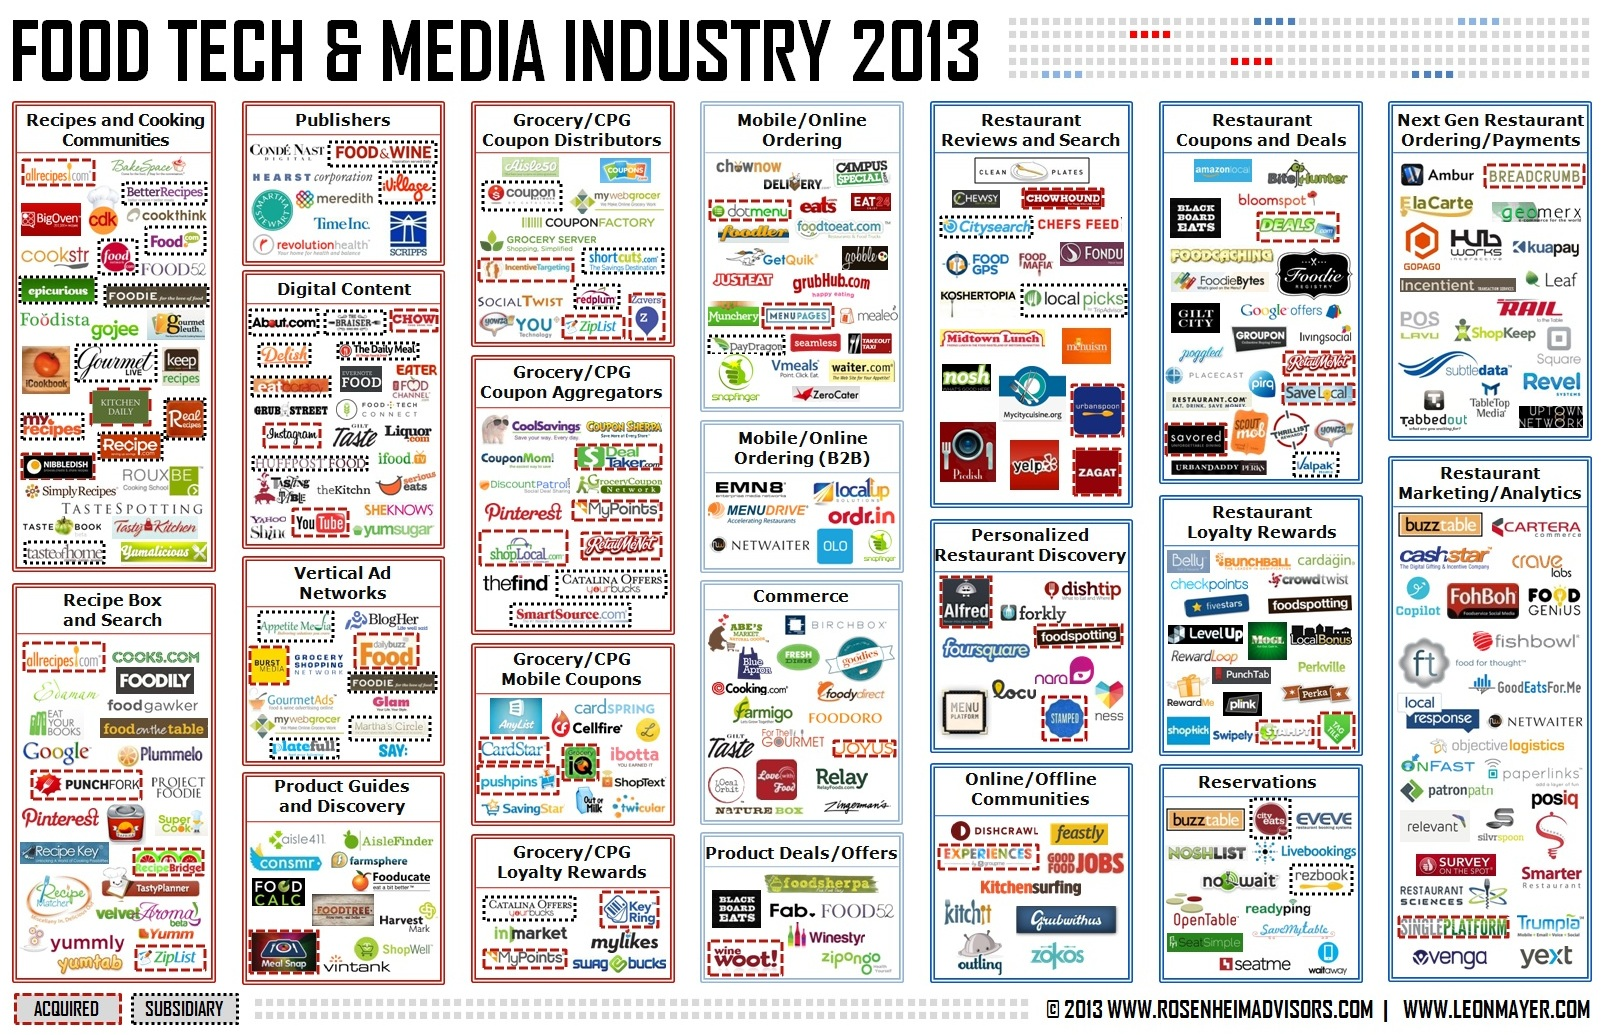 Food Tech and Media Industry January 2013 - Rosenheim Advisors and Leon Mayer